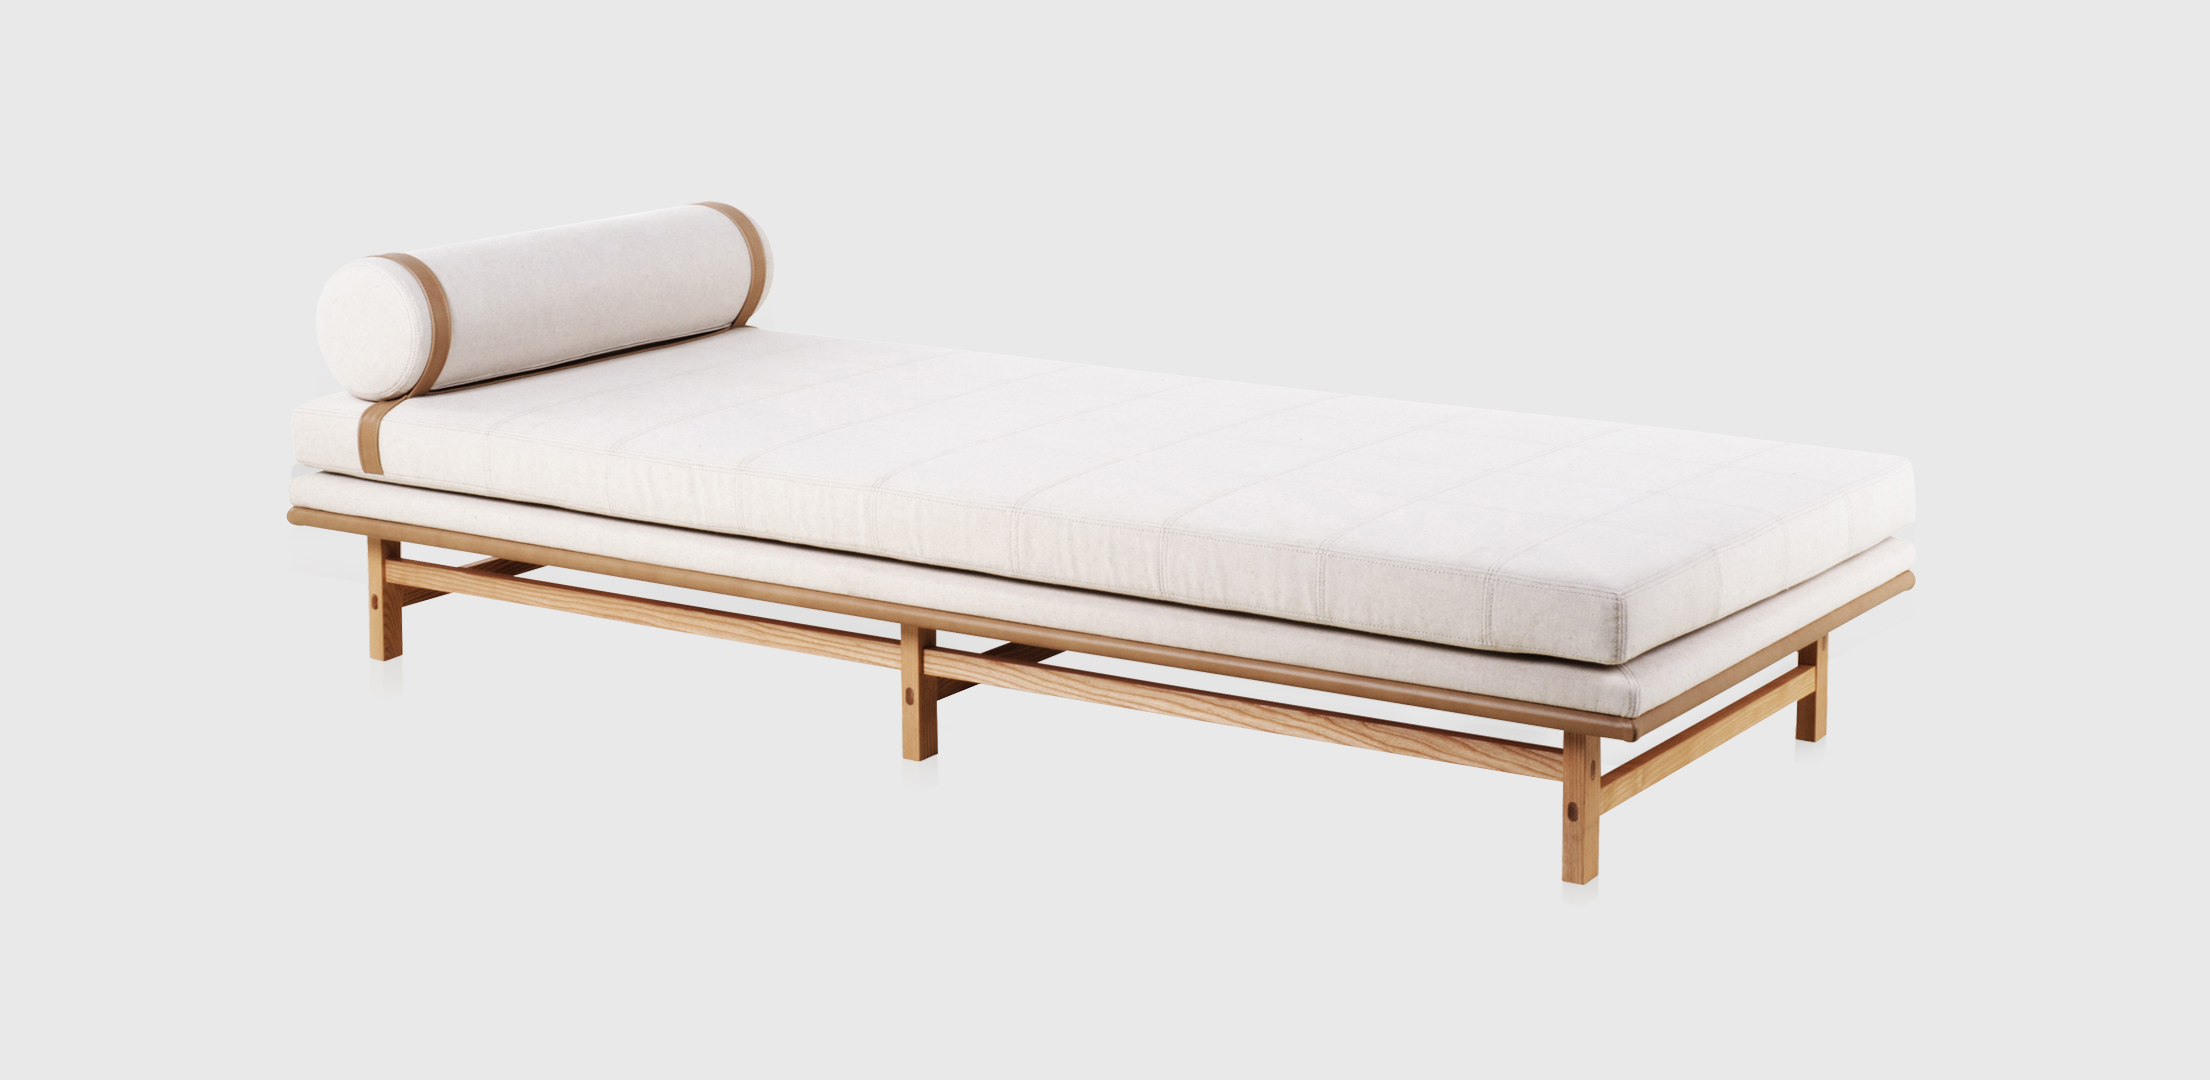 The 'SW' daybed by OeO studio for Stellar Works. A beautifully delicate construction with fine detailing.